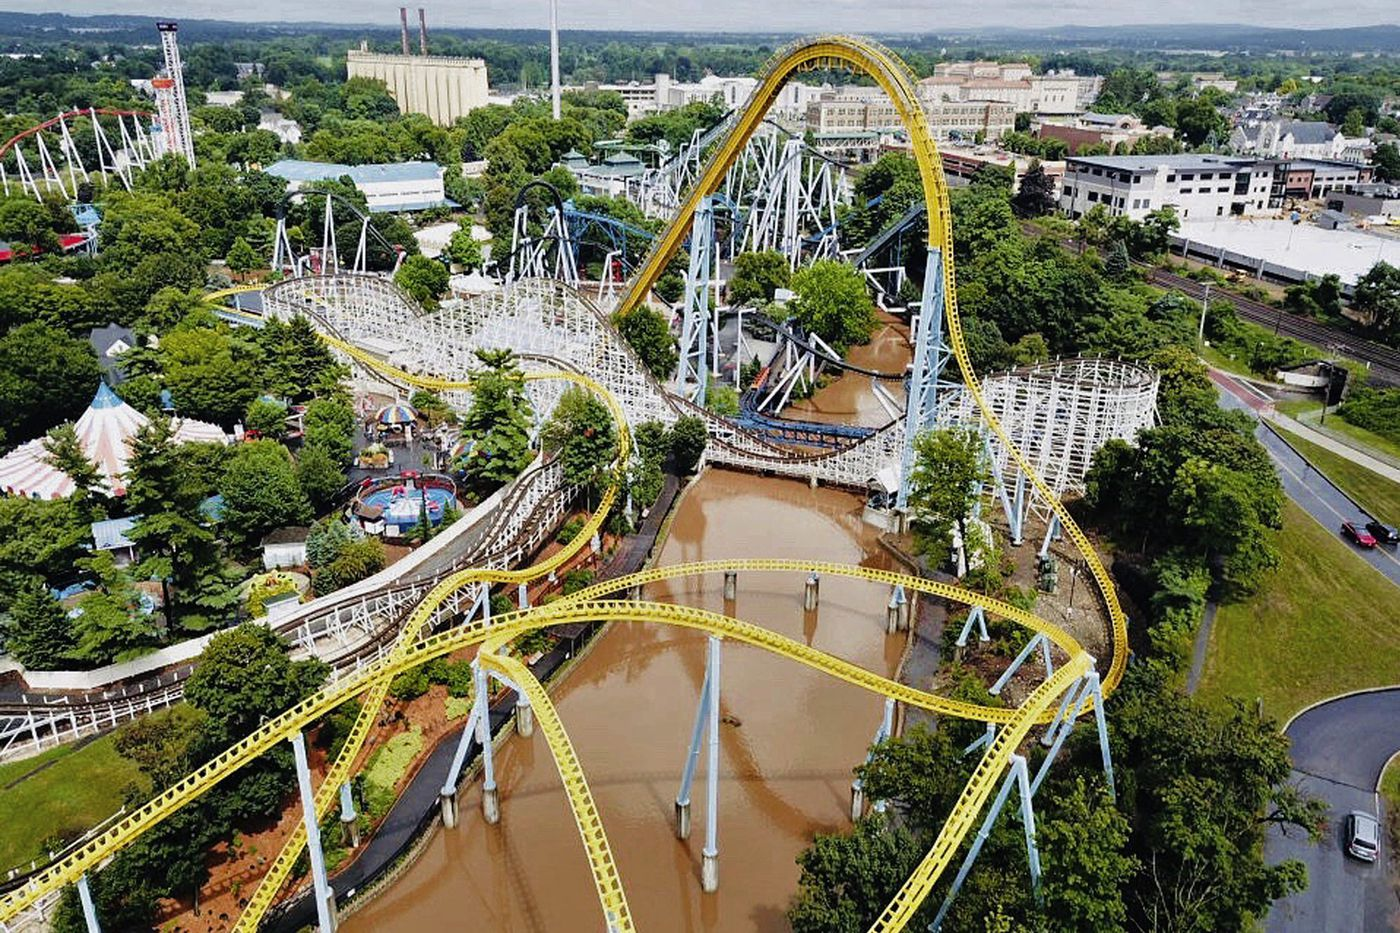 Hersheypark to remain closed Thursday due to flooding